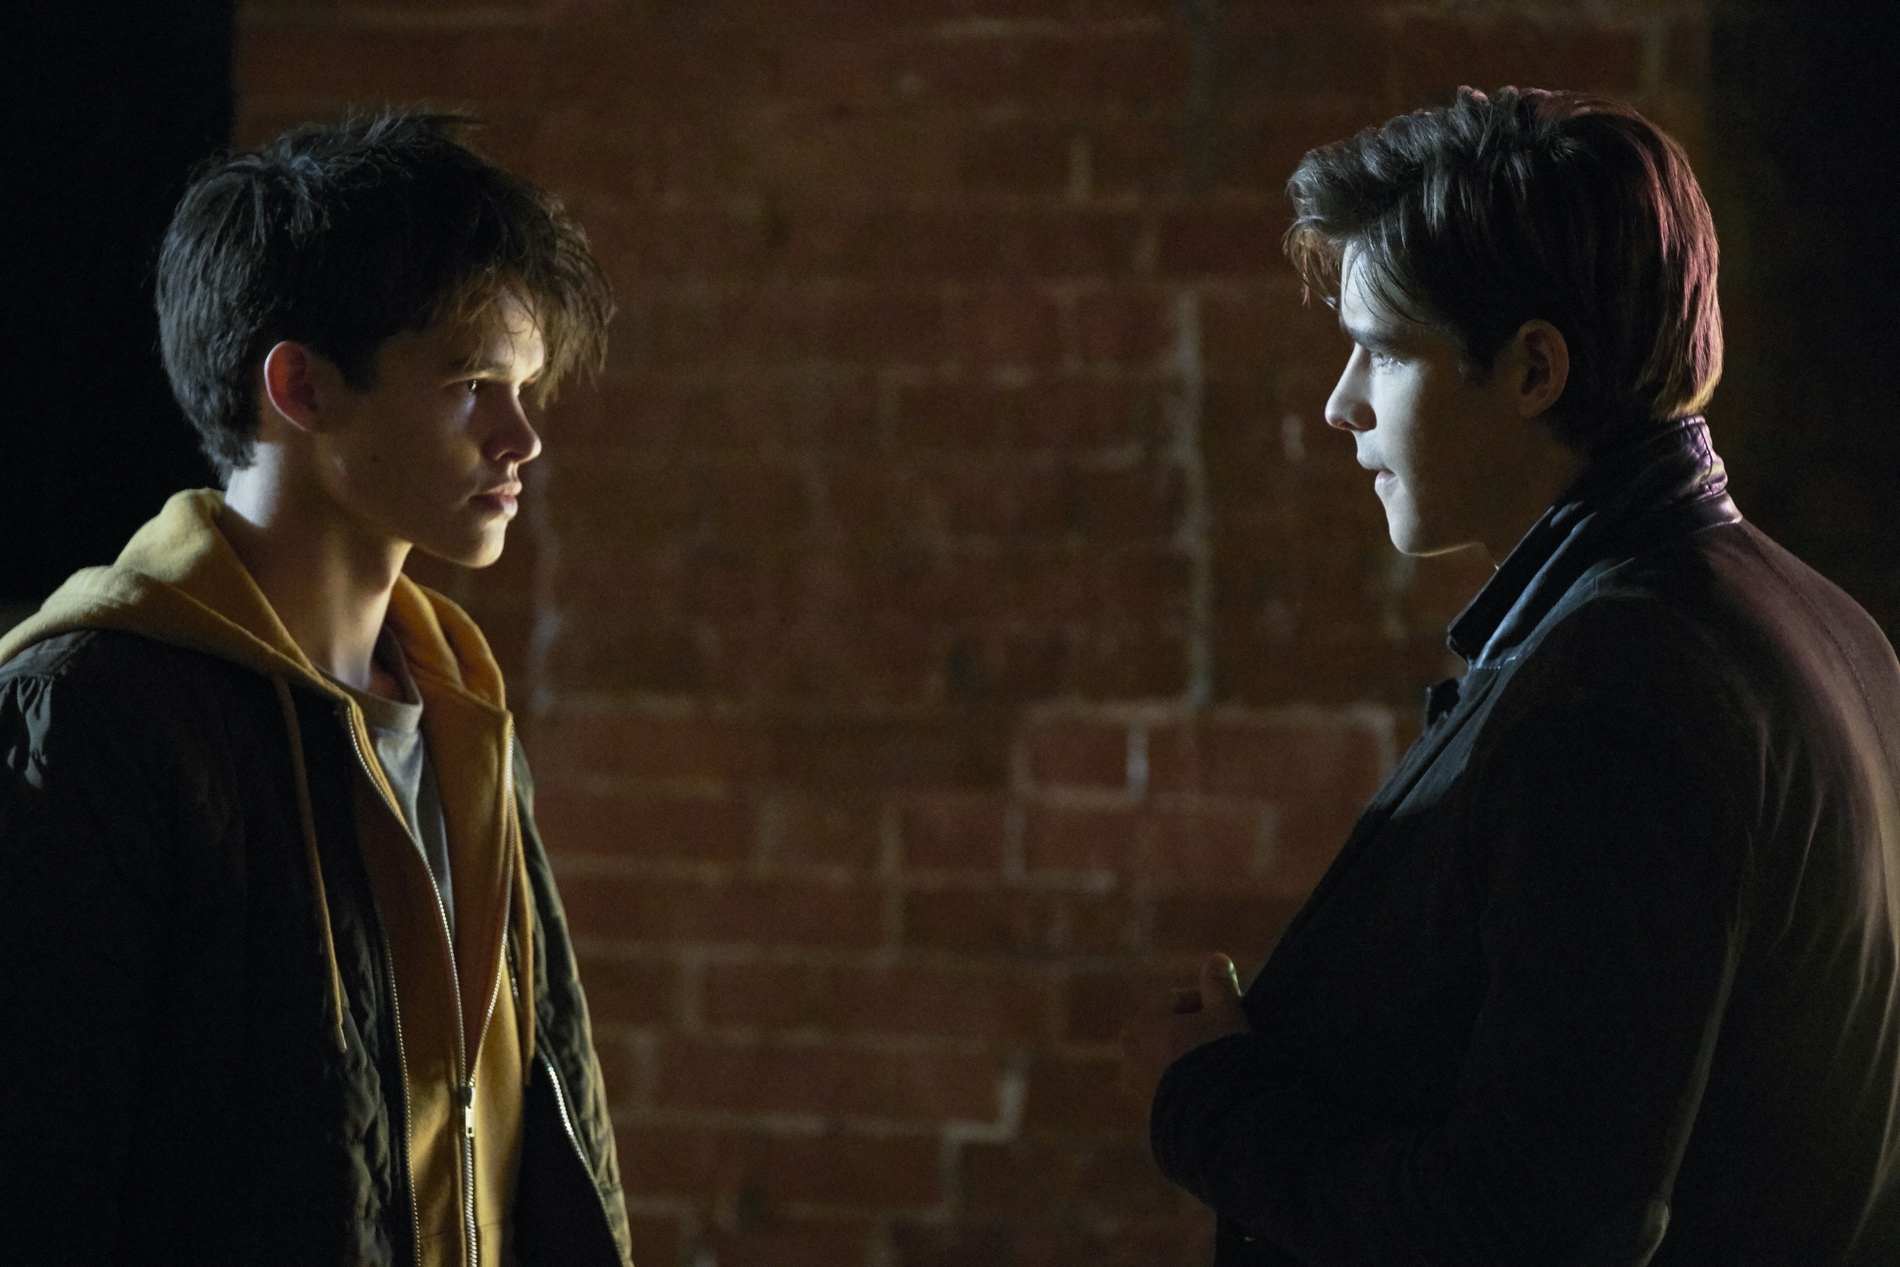 """Titans S01E06: """"Jason Todd"""" – synopsis, photos, and discussion"""